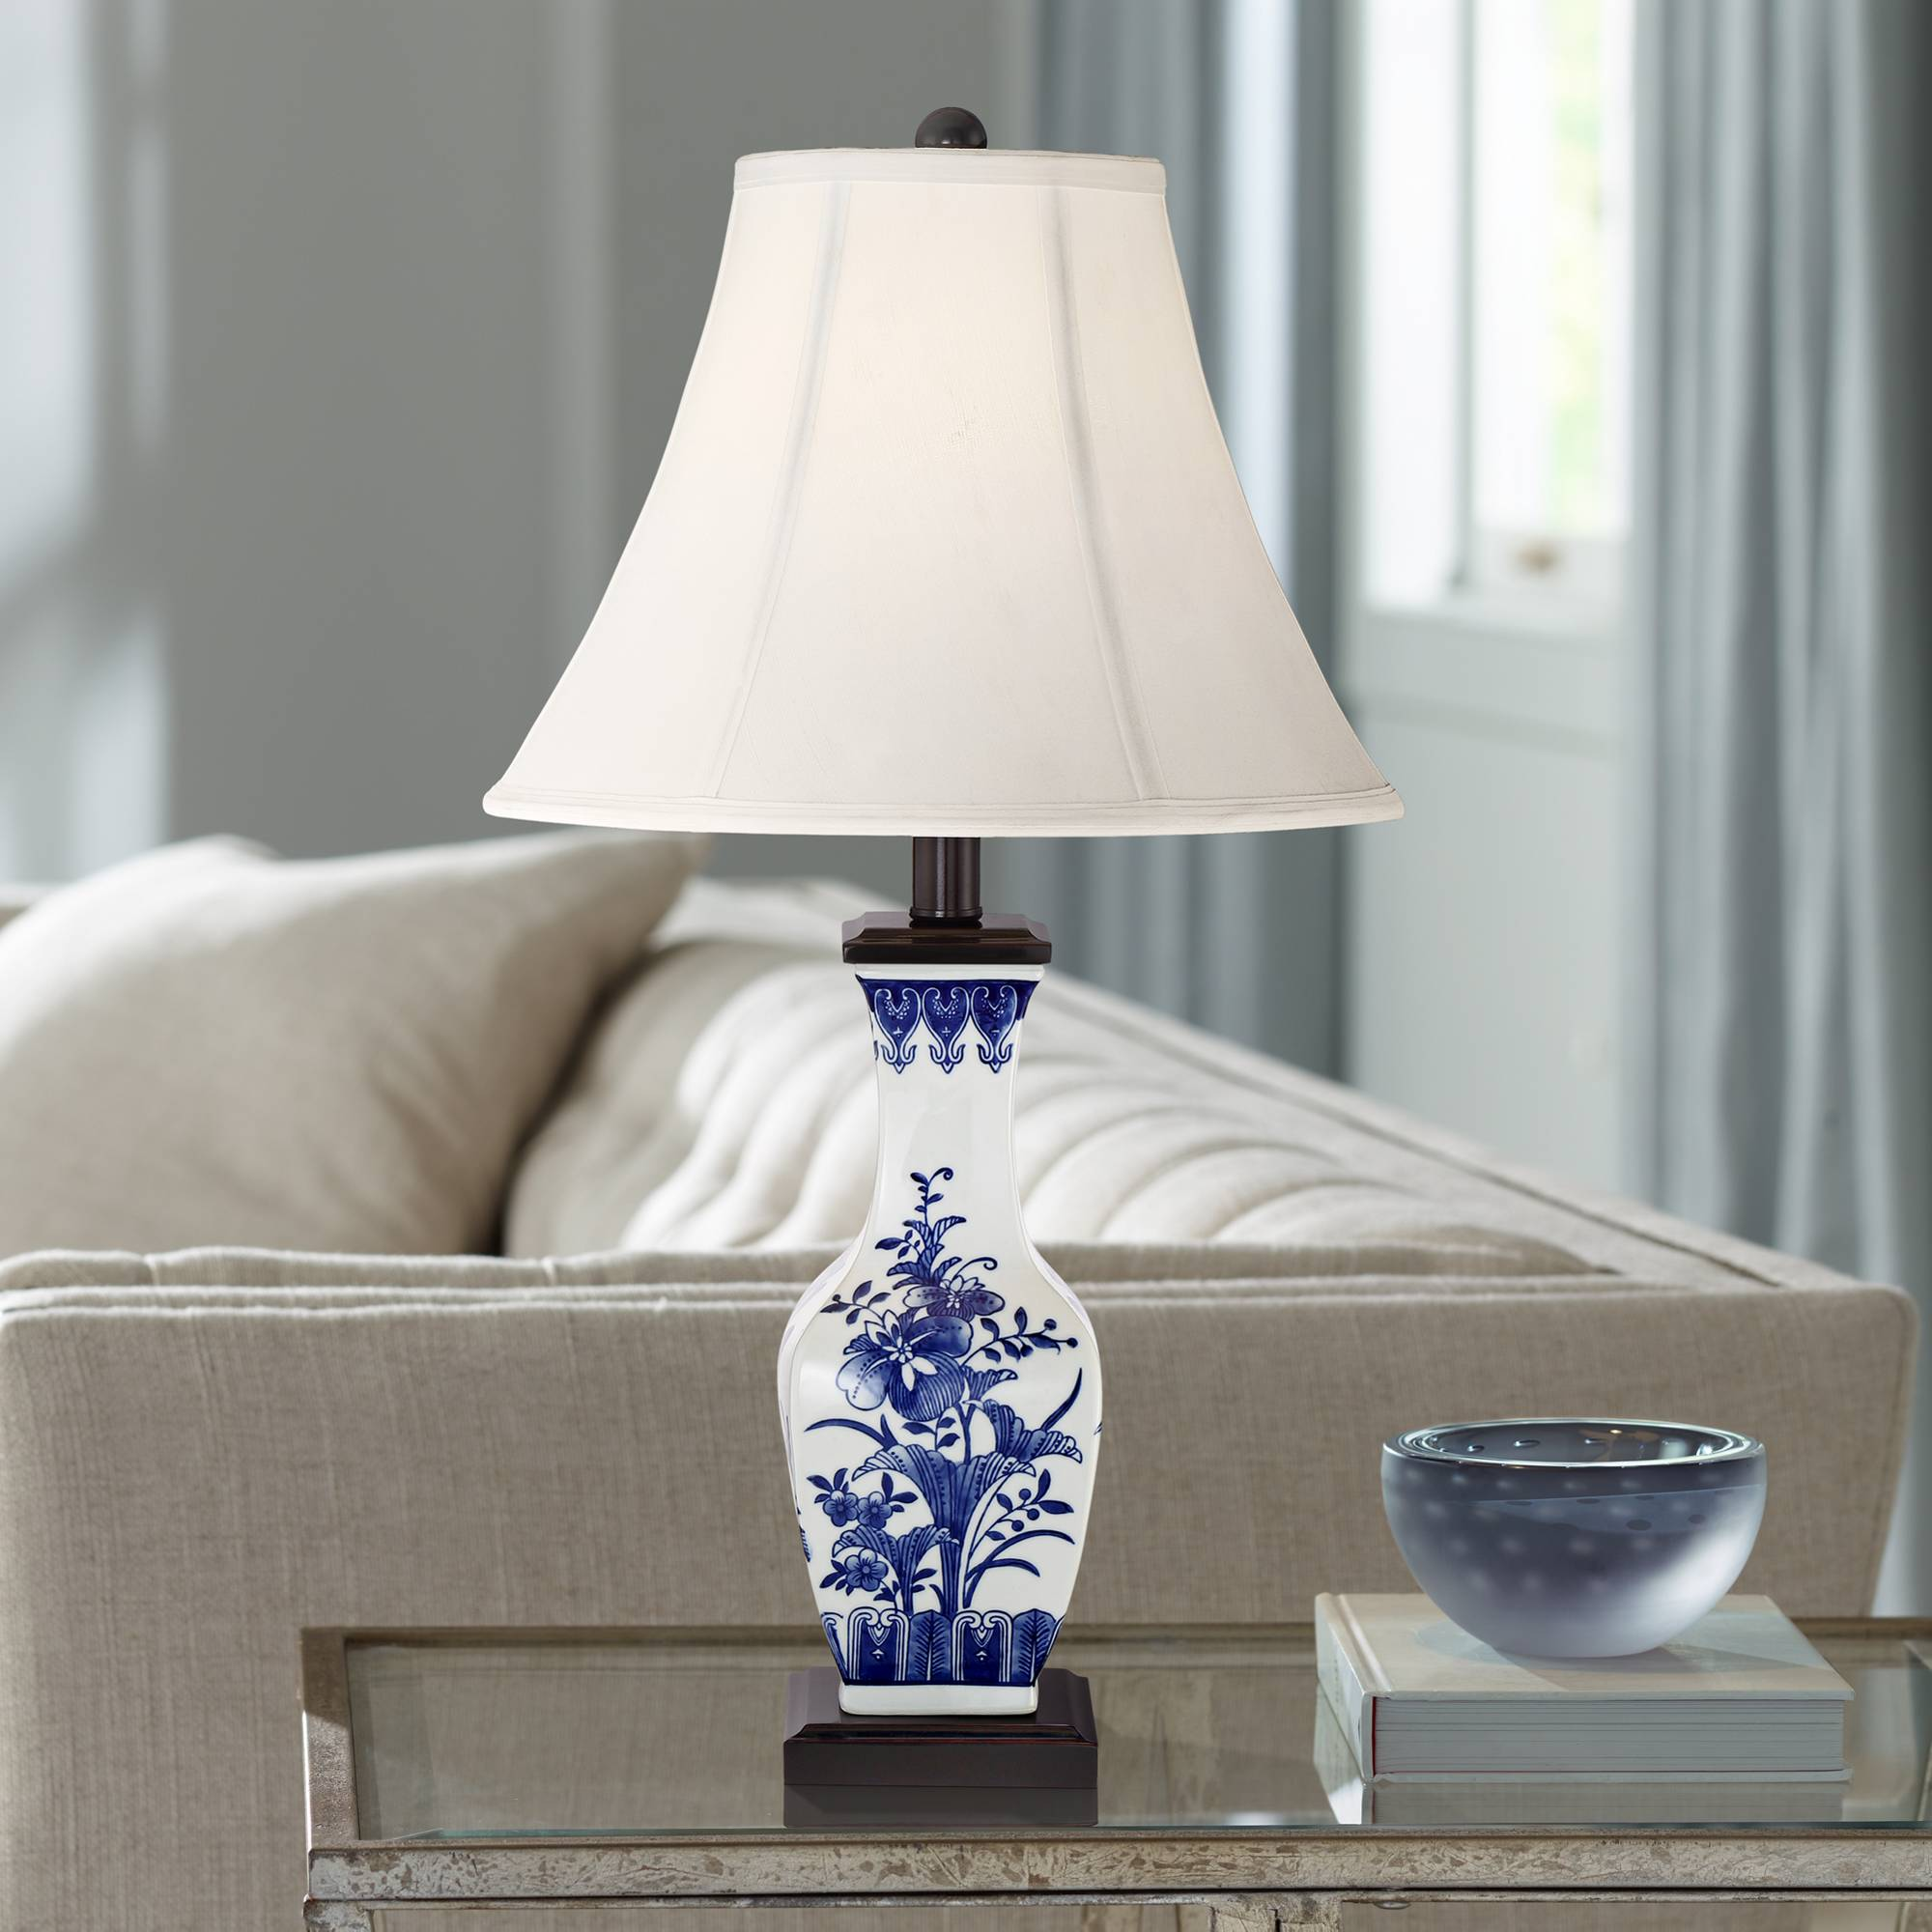 Details about Asian Table Lamp Ceramic Blue Floral Vase White for Living  Room Bedroom